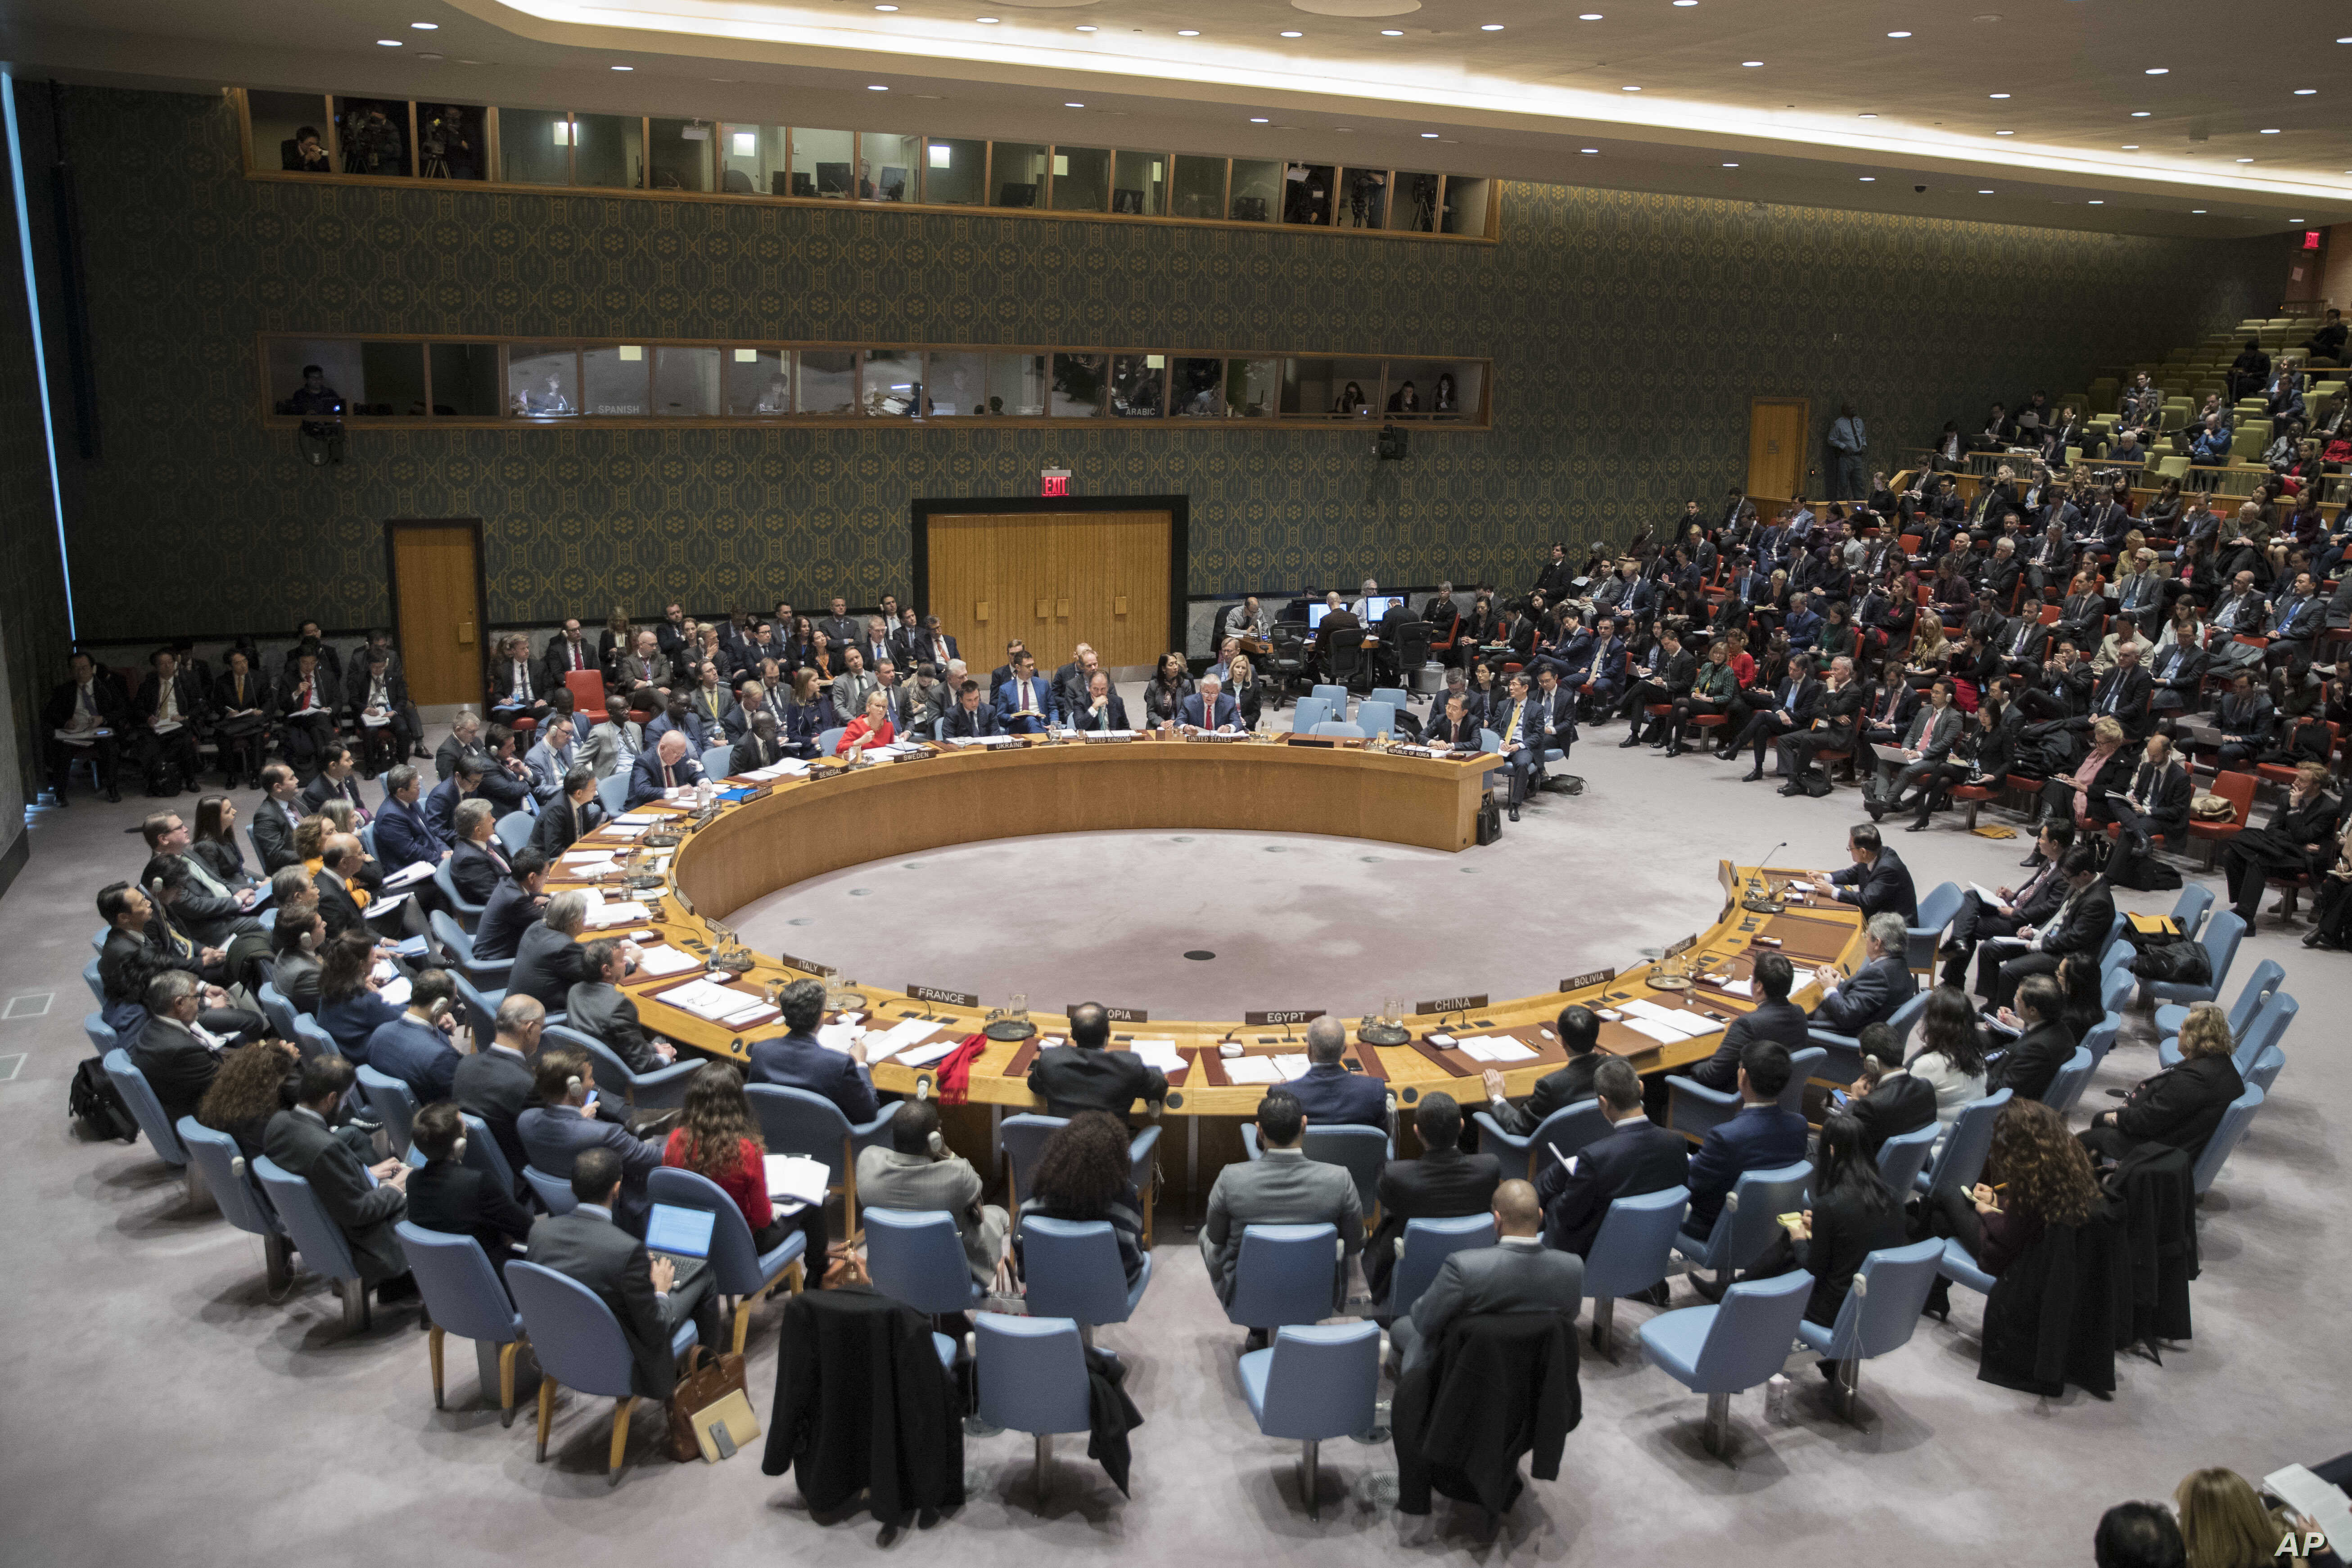 UN Security Council Welcomes 6 New Members | Voice of